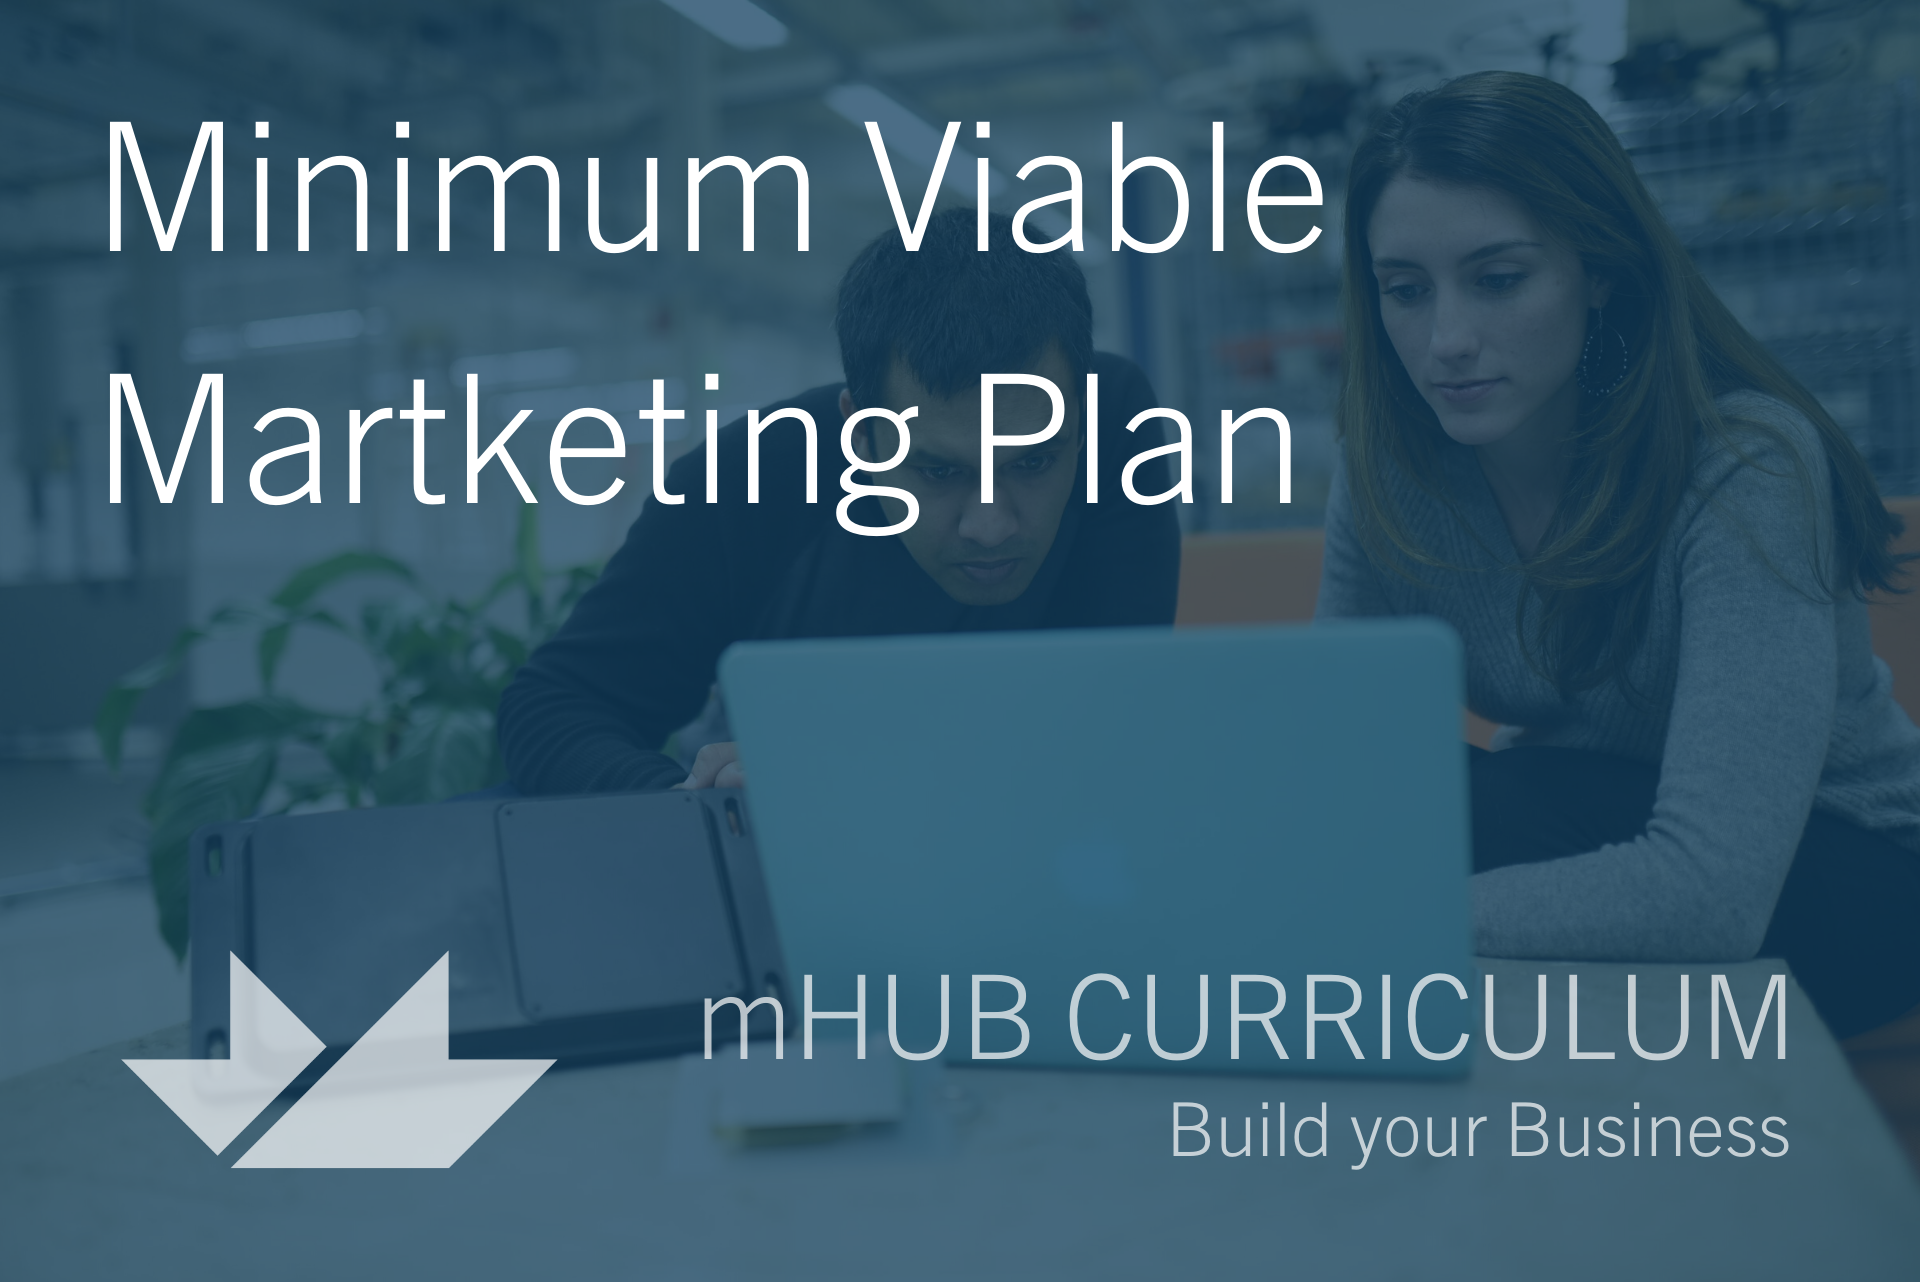 Minimum Viable Marketing Plan